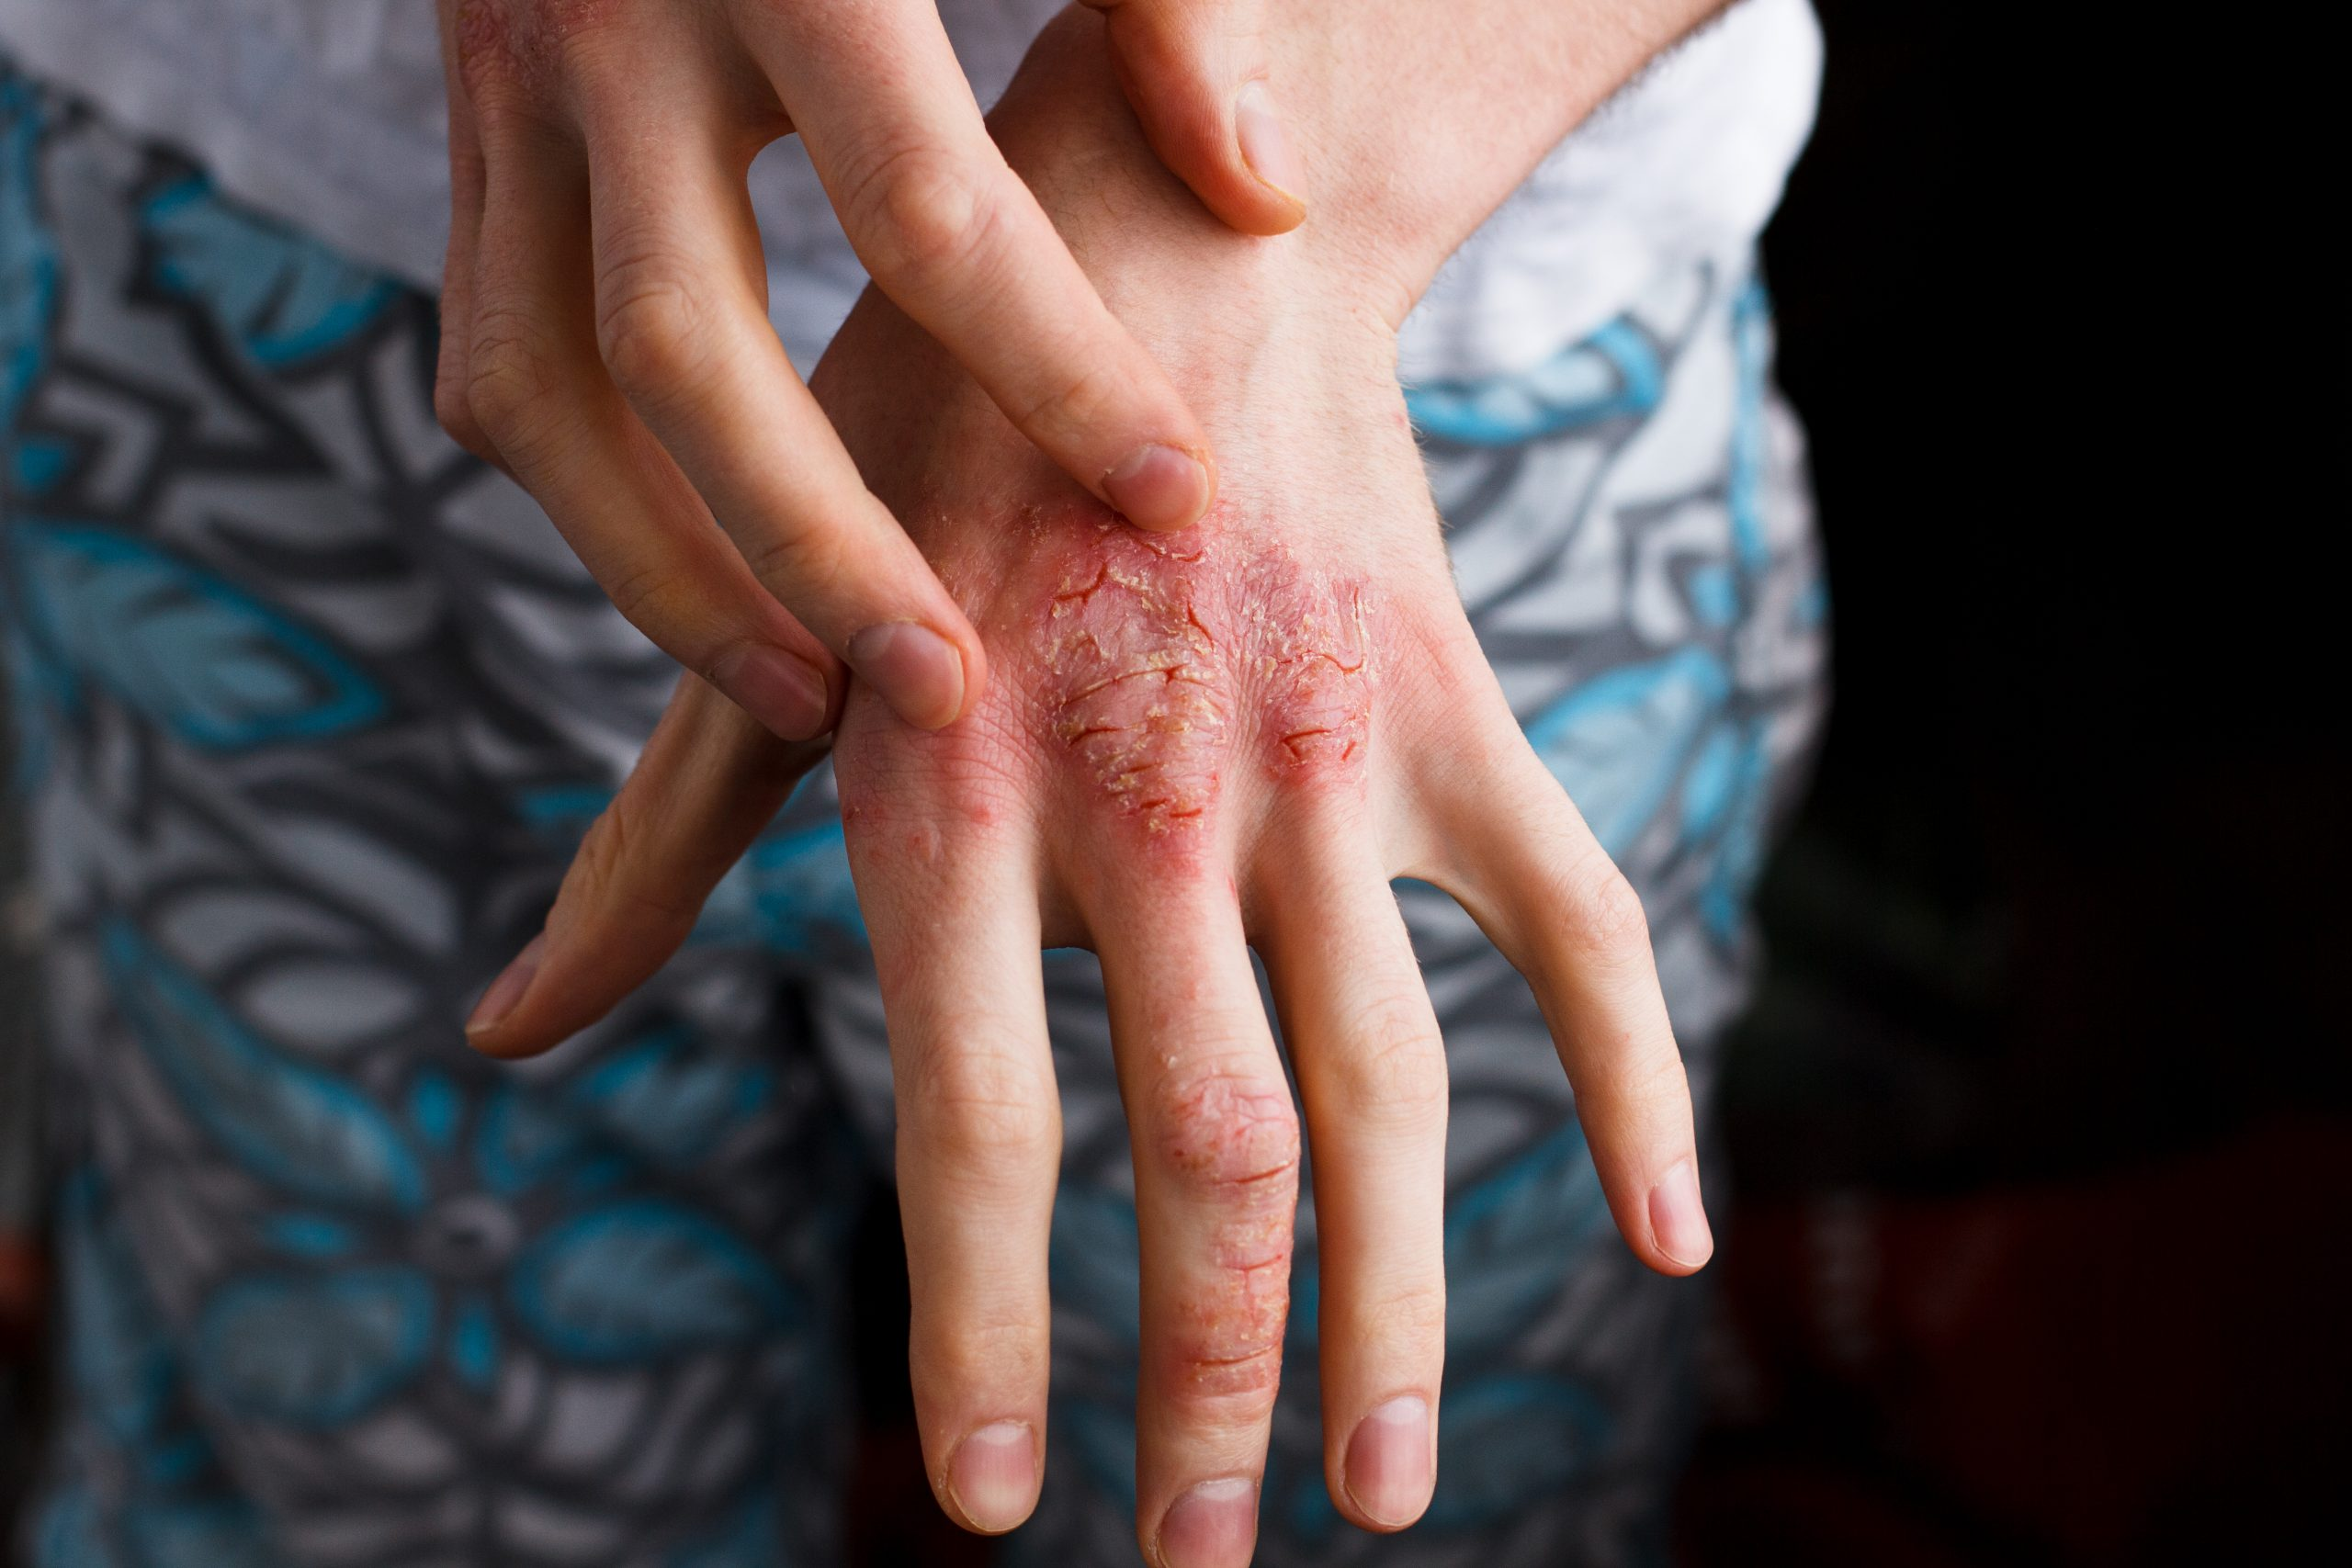 woman with red open sores on her hand - idea of atopic dermatitis flare up